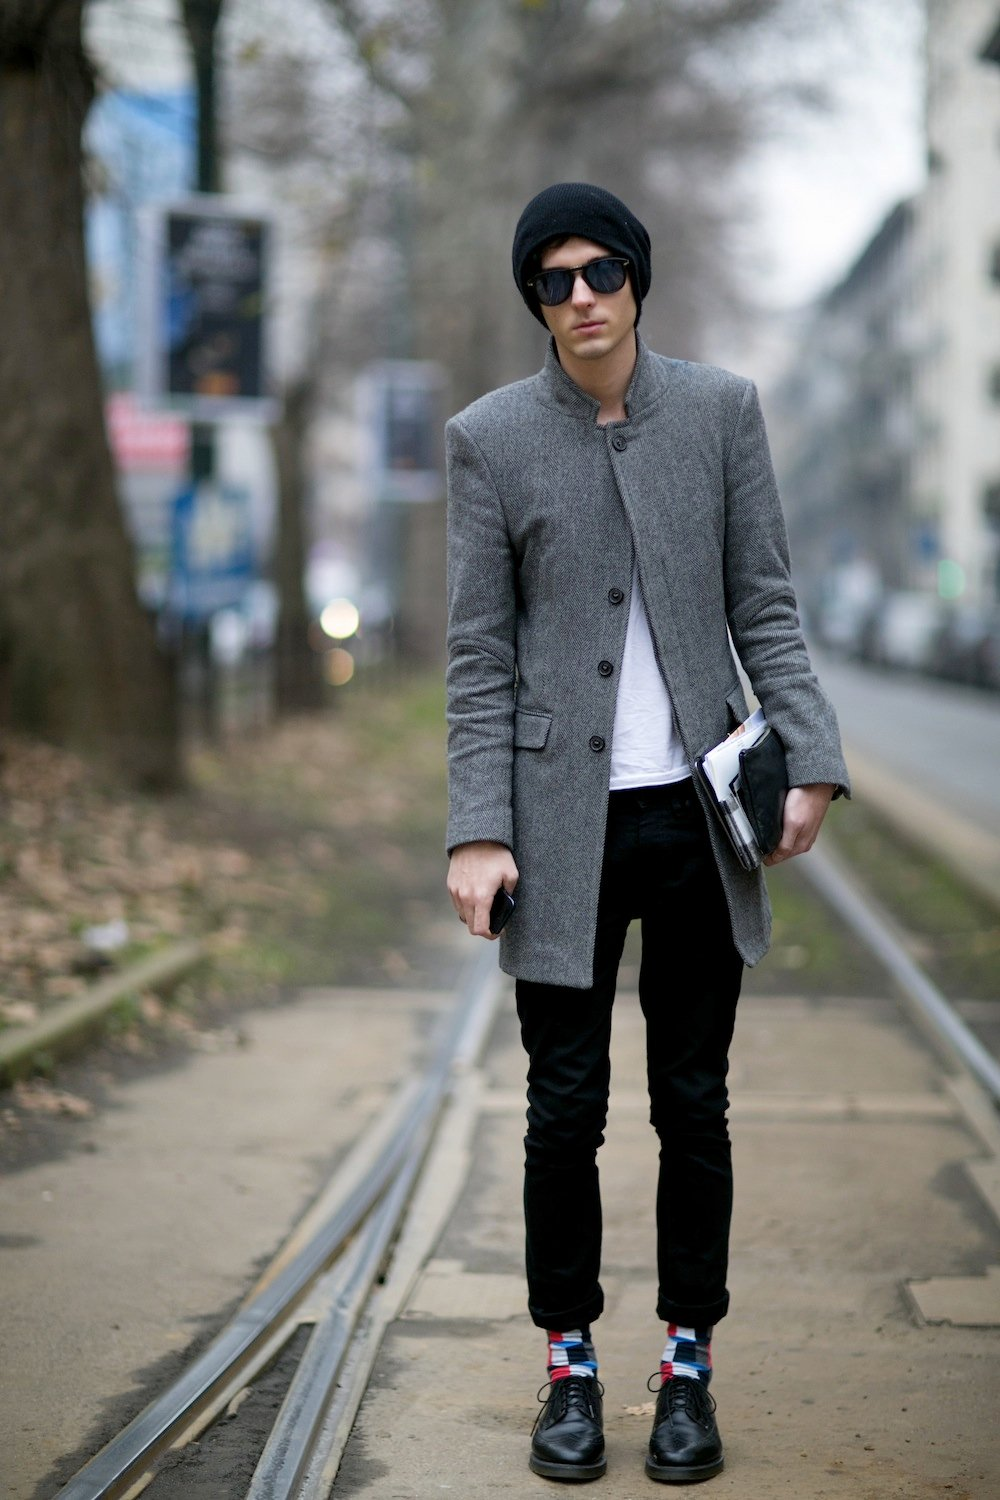 50 Of The Best Street Style Snaps From Milan Men S Fashion Week Fall 2014 Thefashionspot